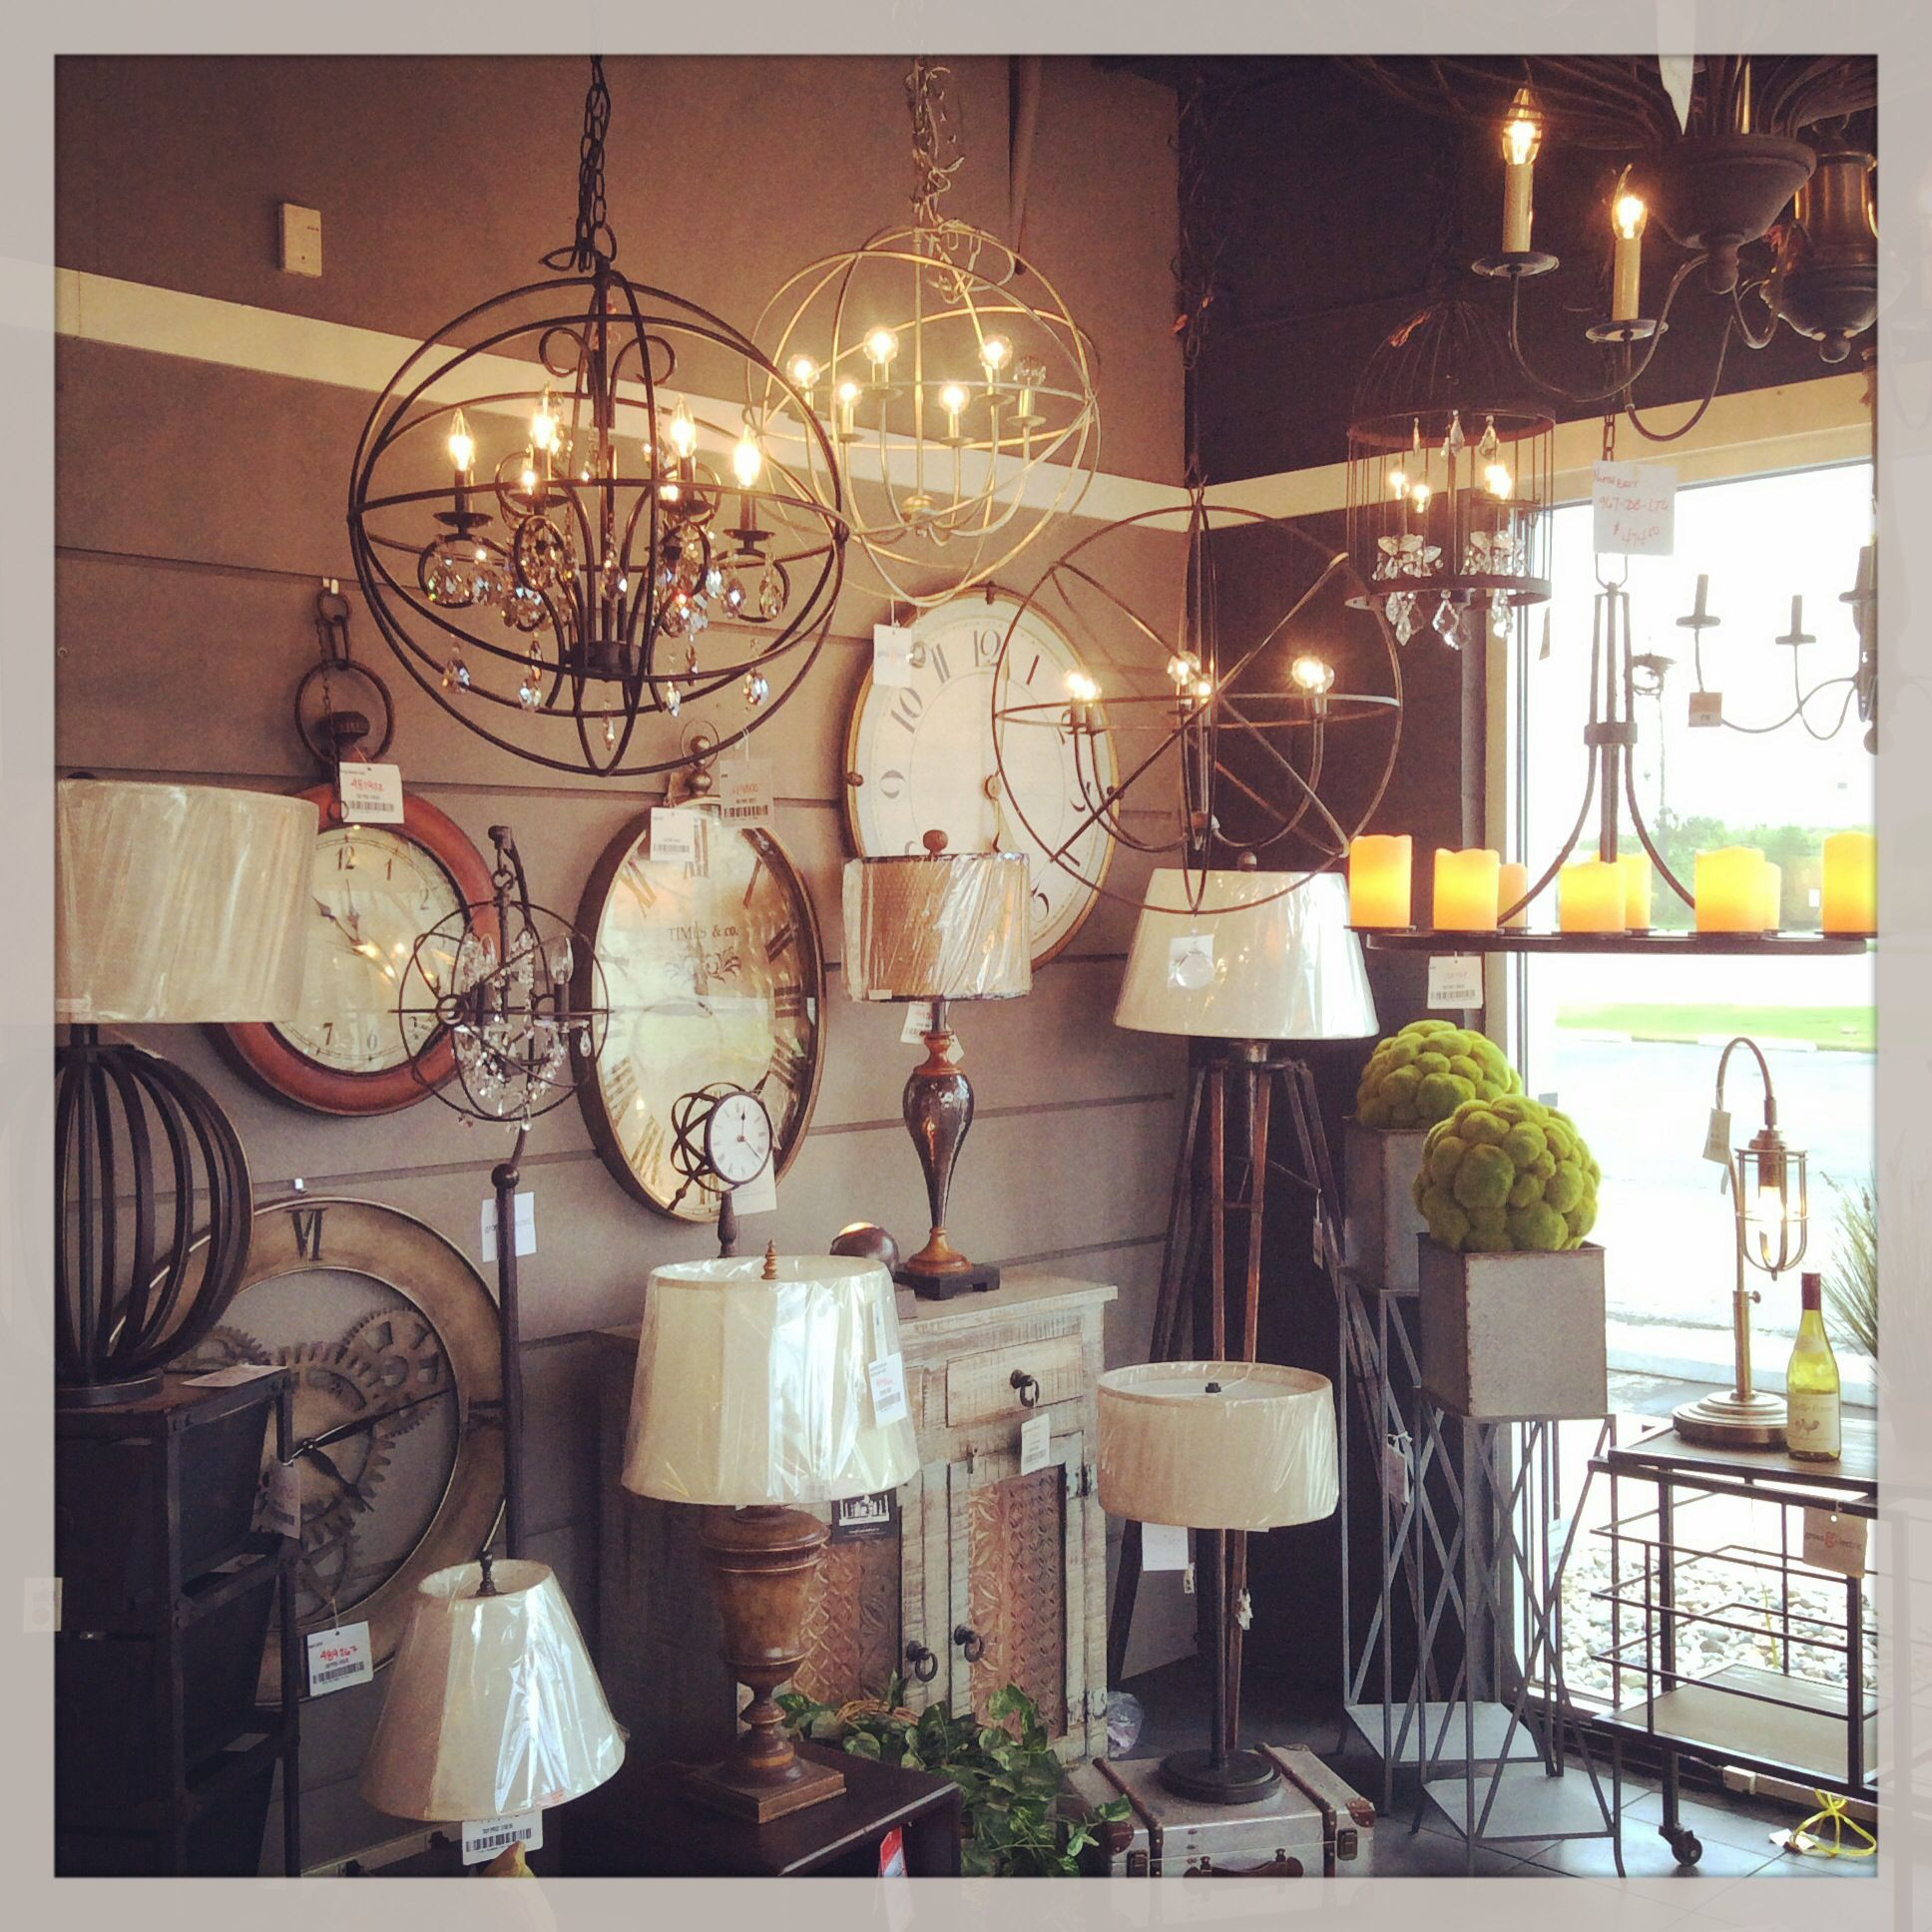 Come check out our restoration style chandeliers and lamps in our toledo oh showroom